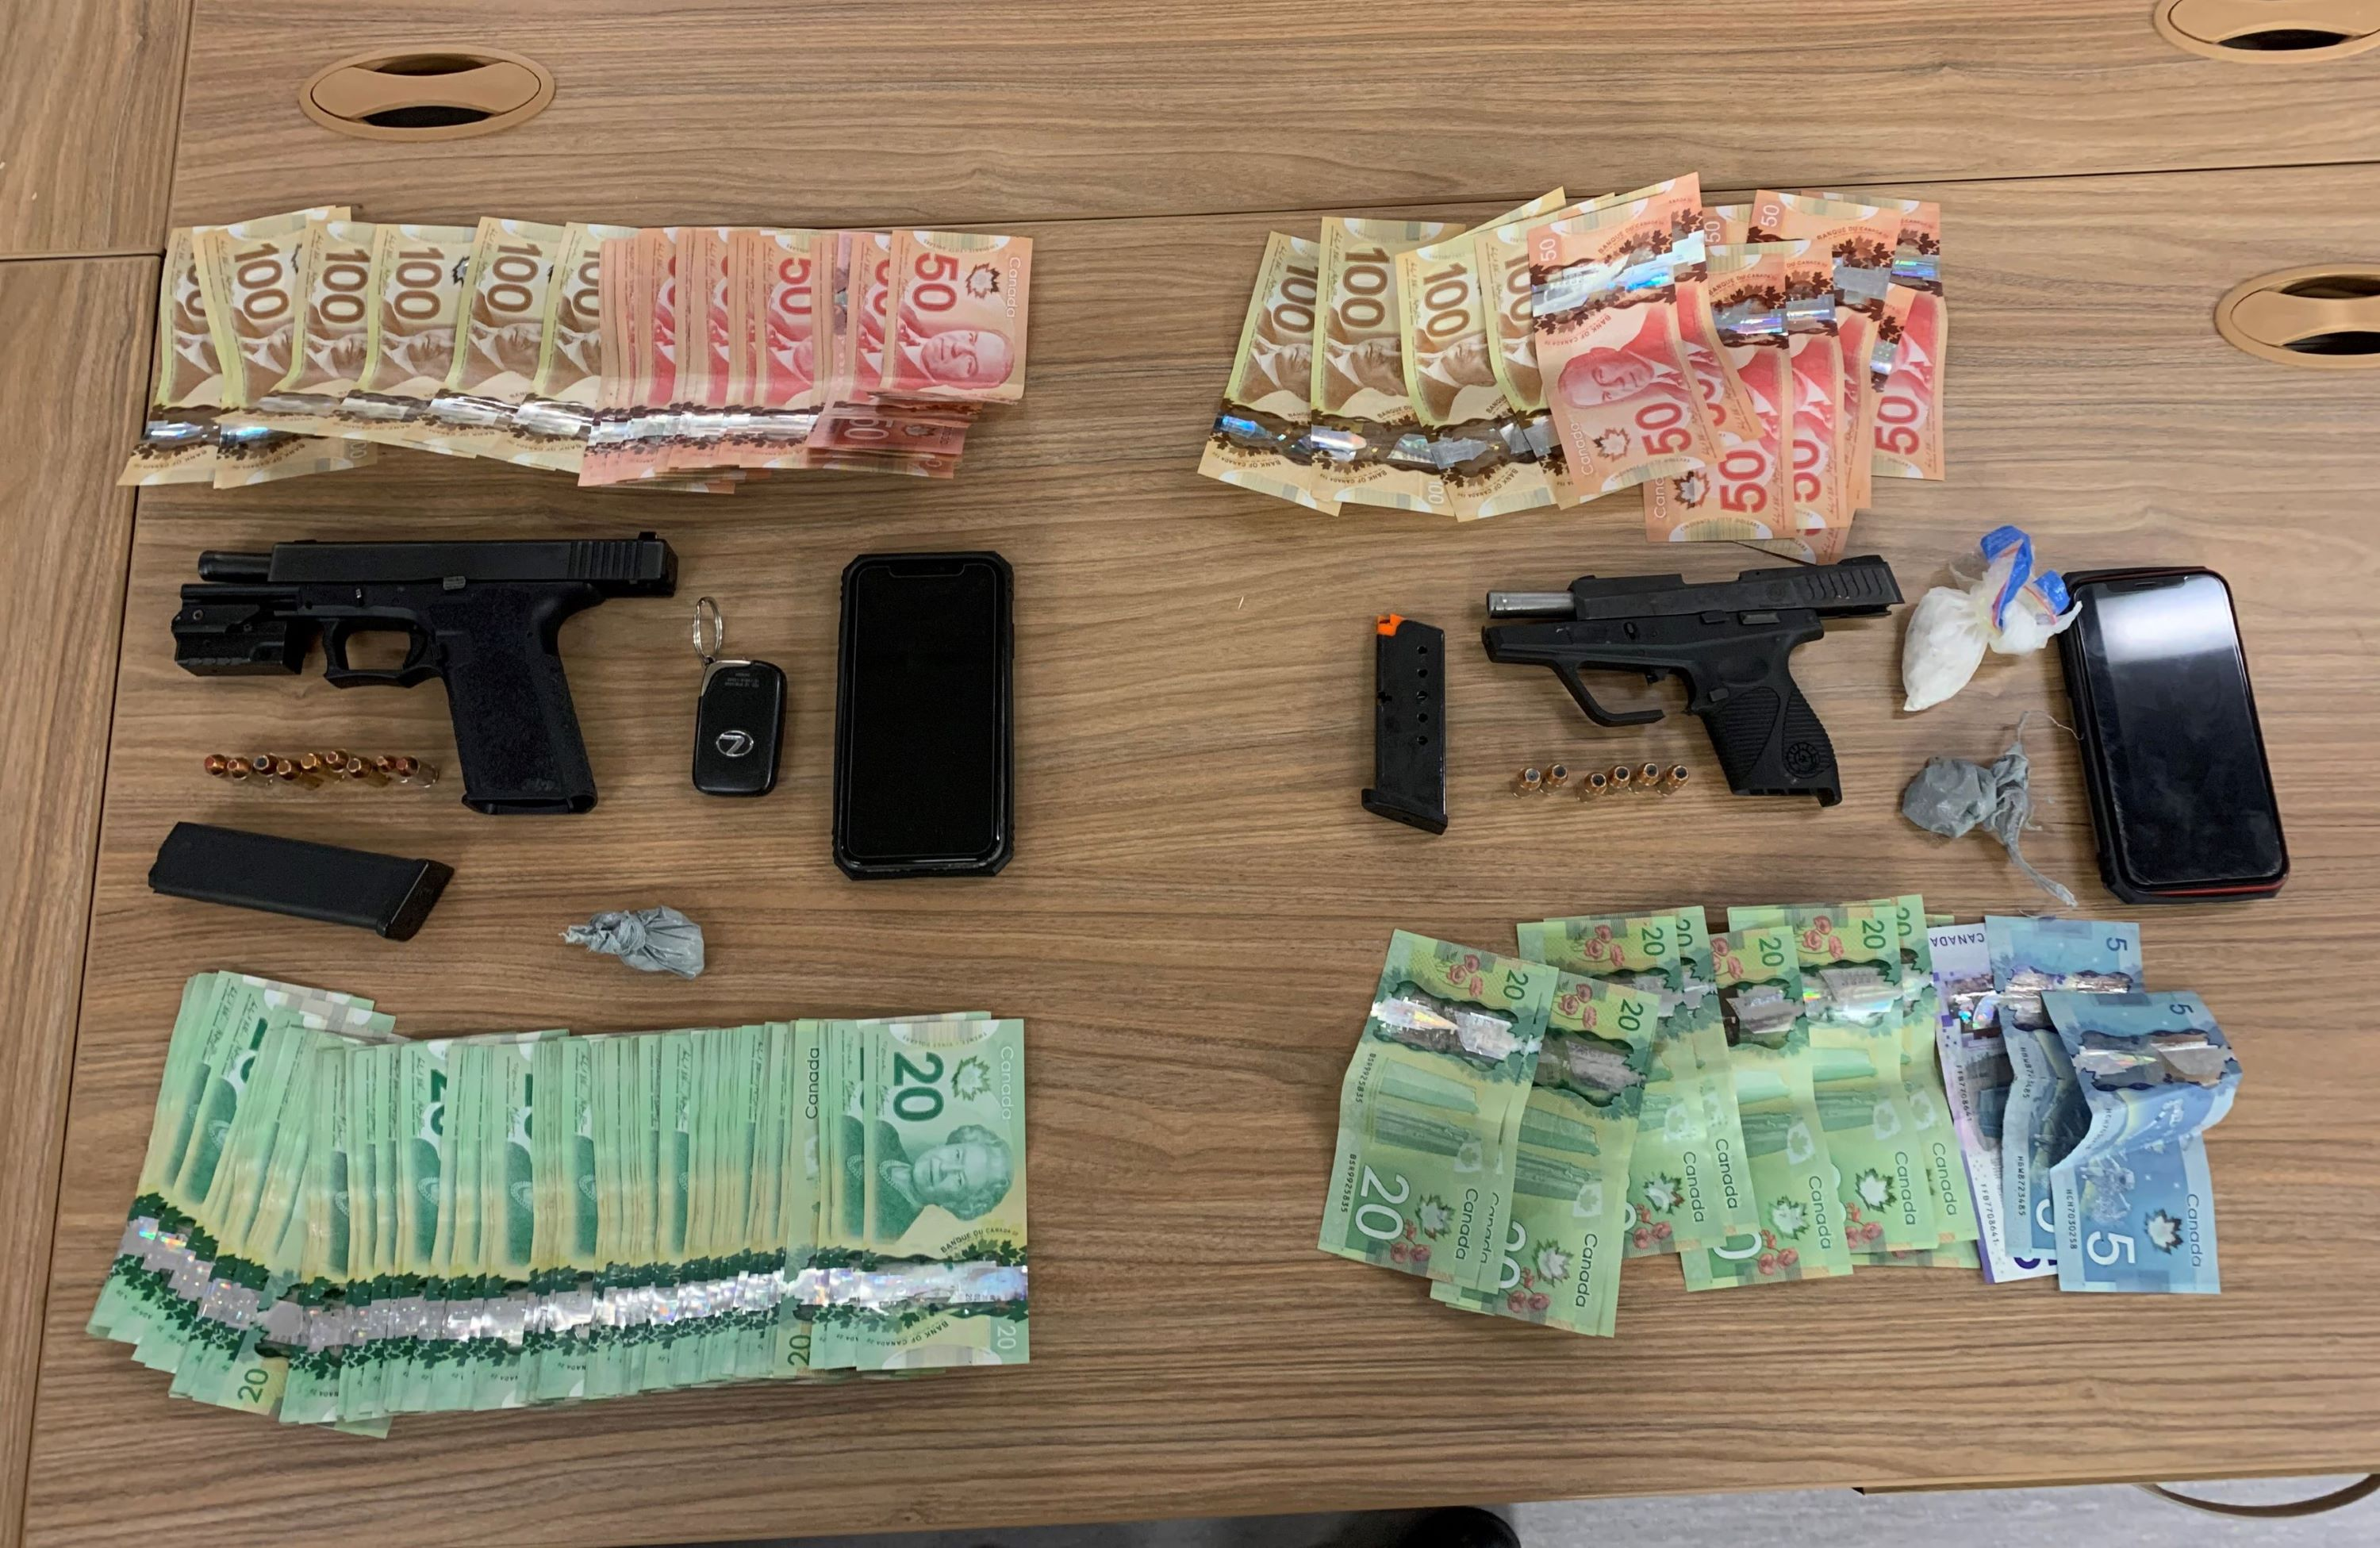 Police reportedly seize two loaded handguns, cocaine following traffic stop